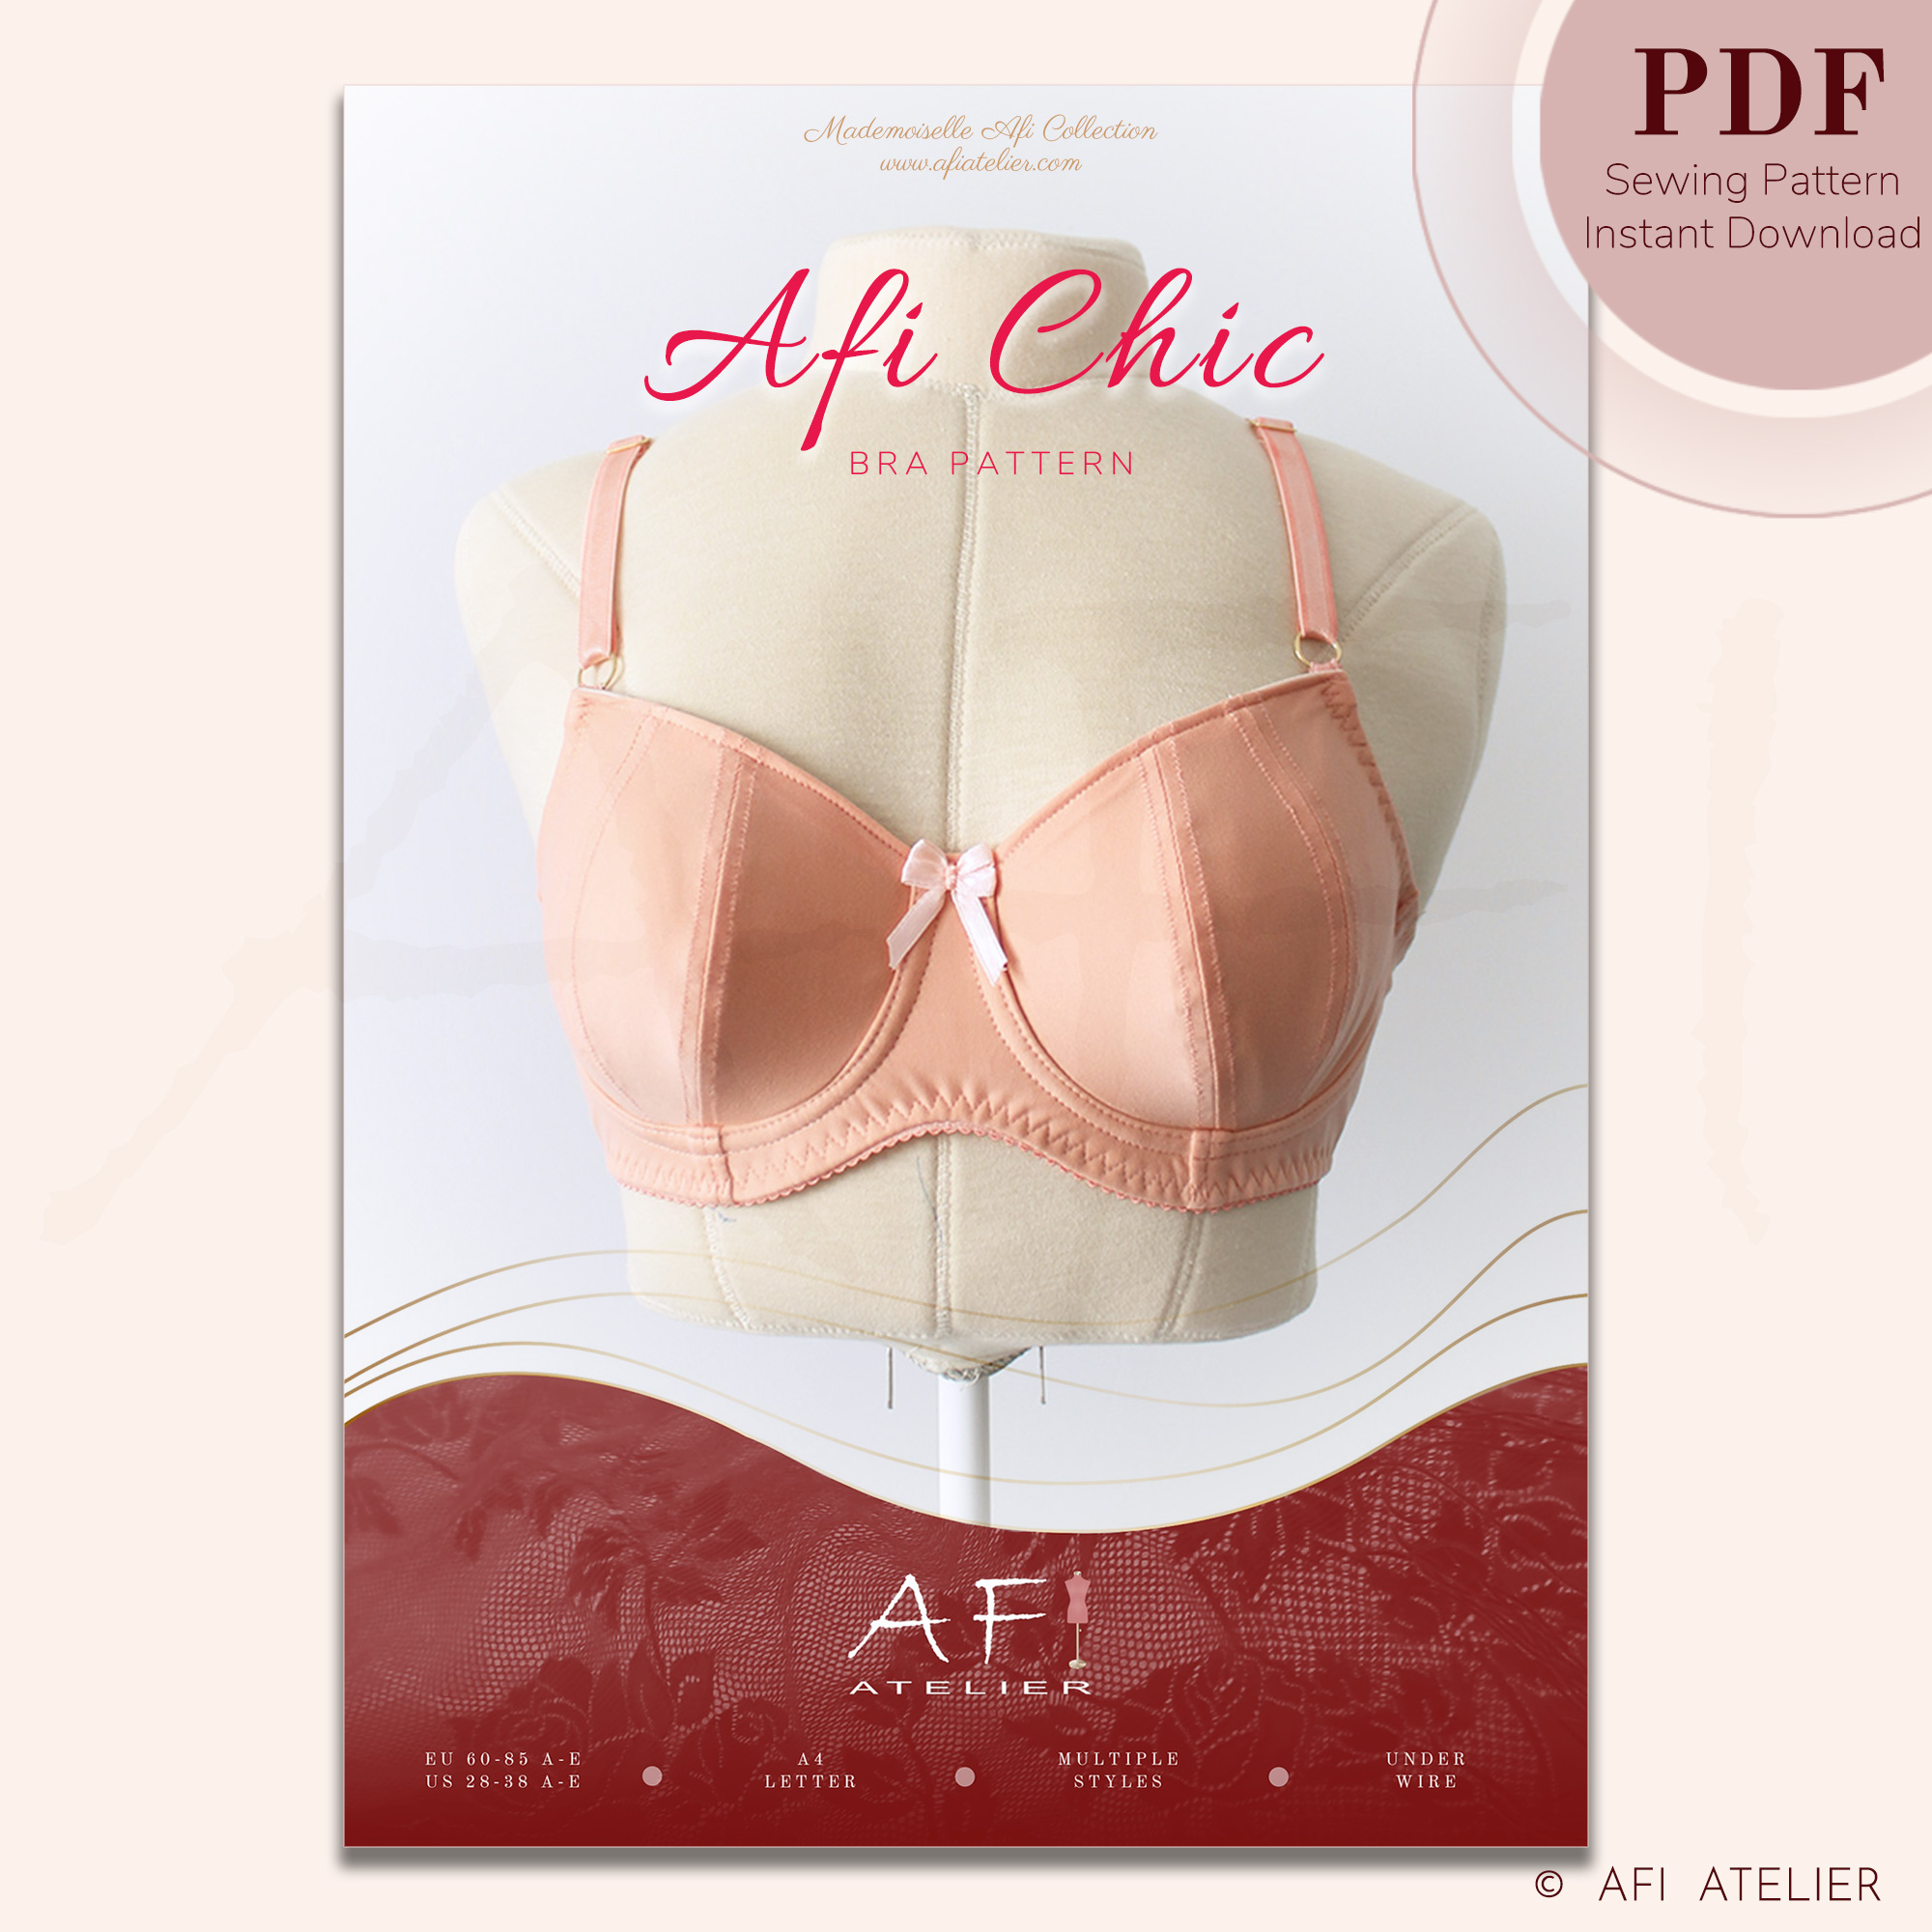 Afi Chic Bra Pattern from Afi Atelier